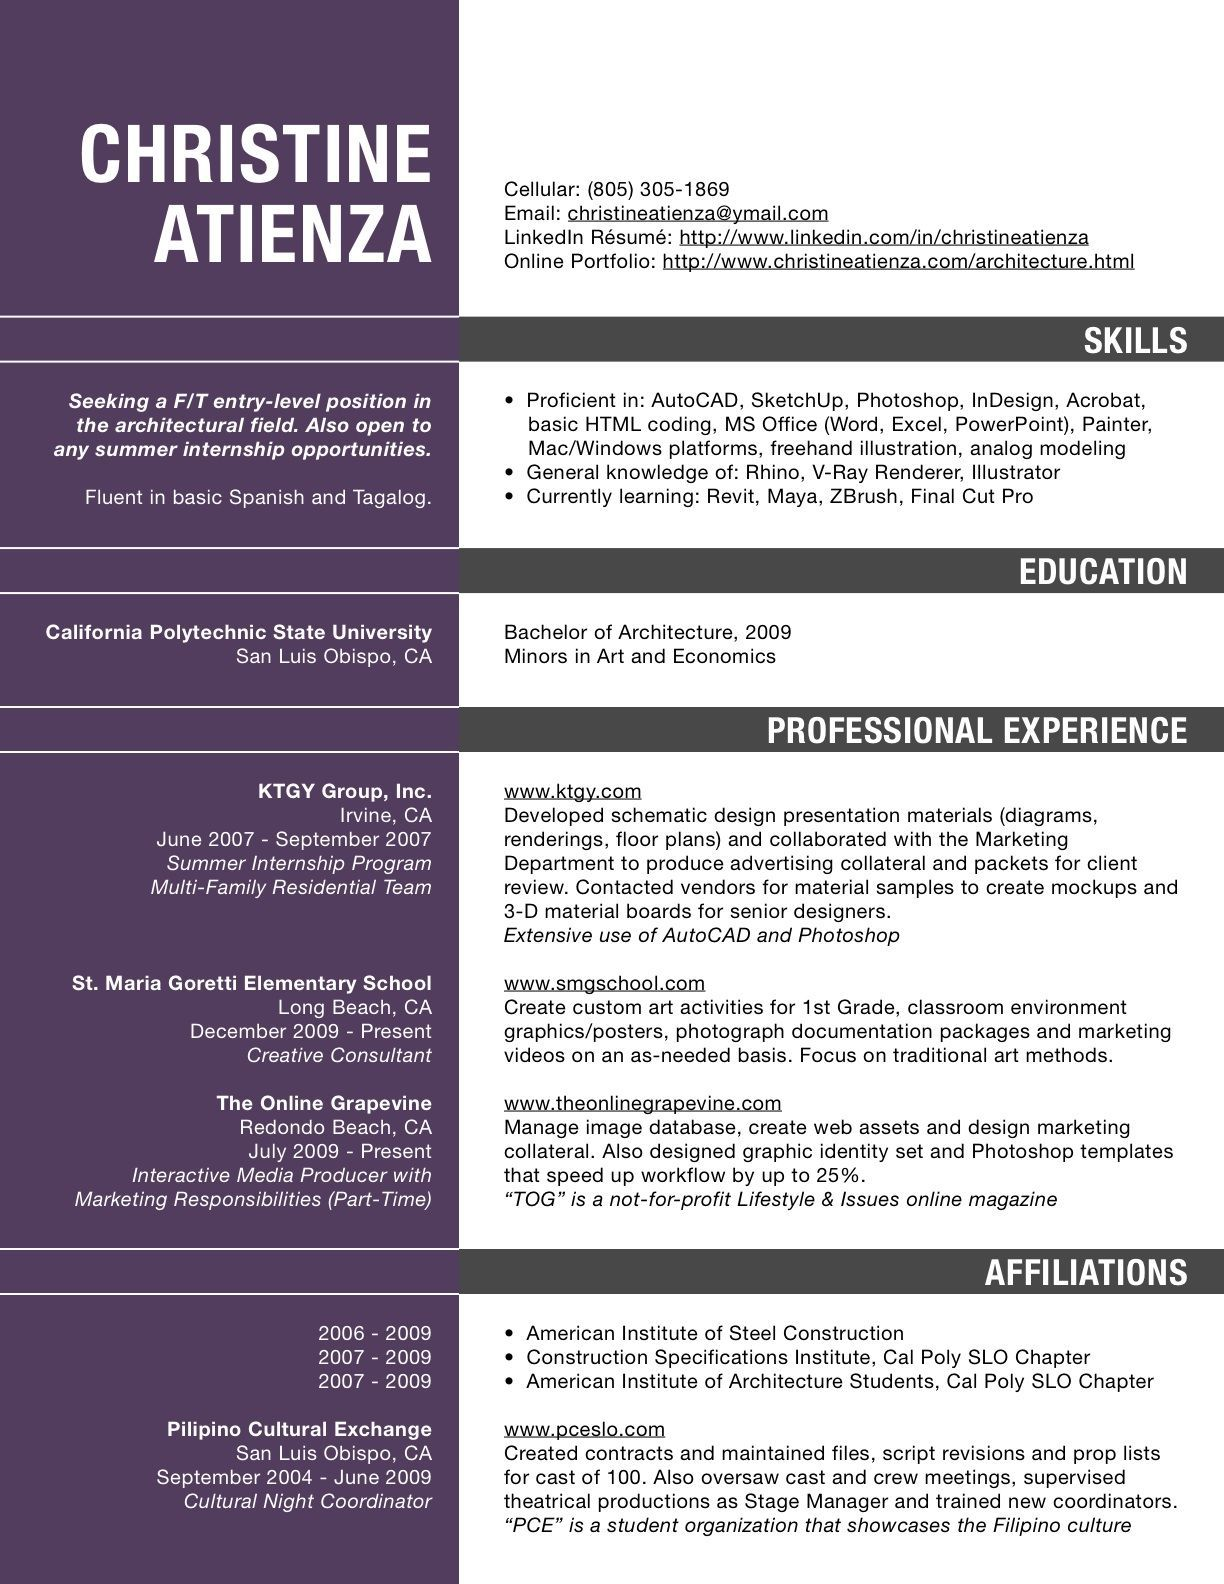 Architect Cv Sample Doc Architect resume, Architecture